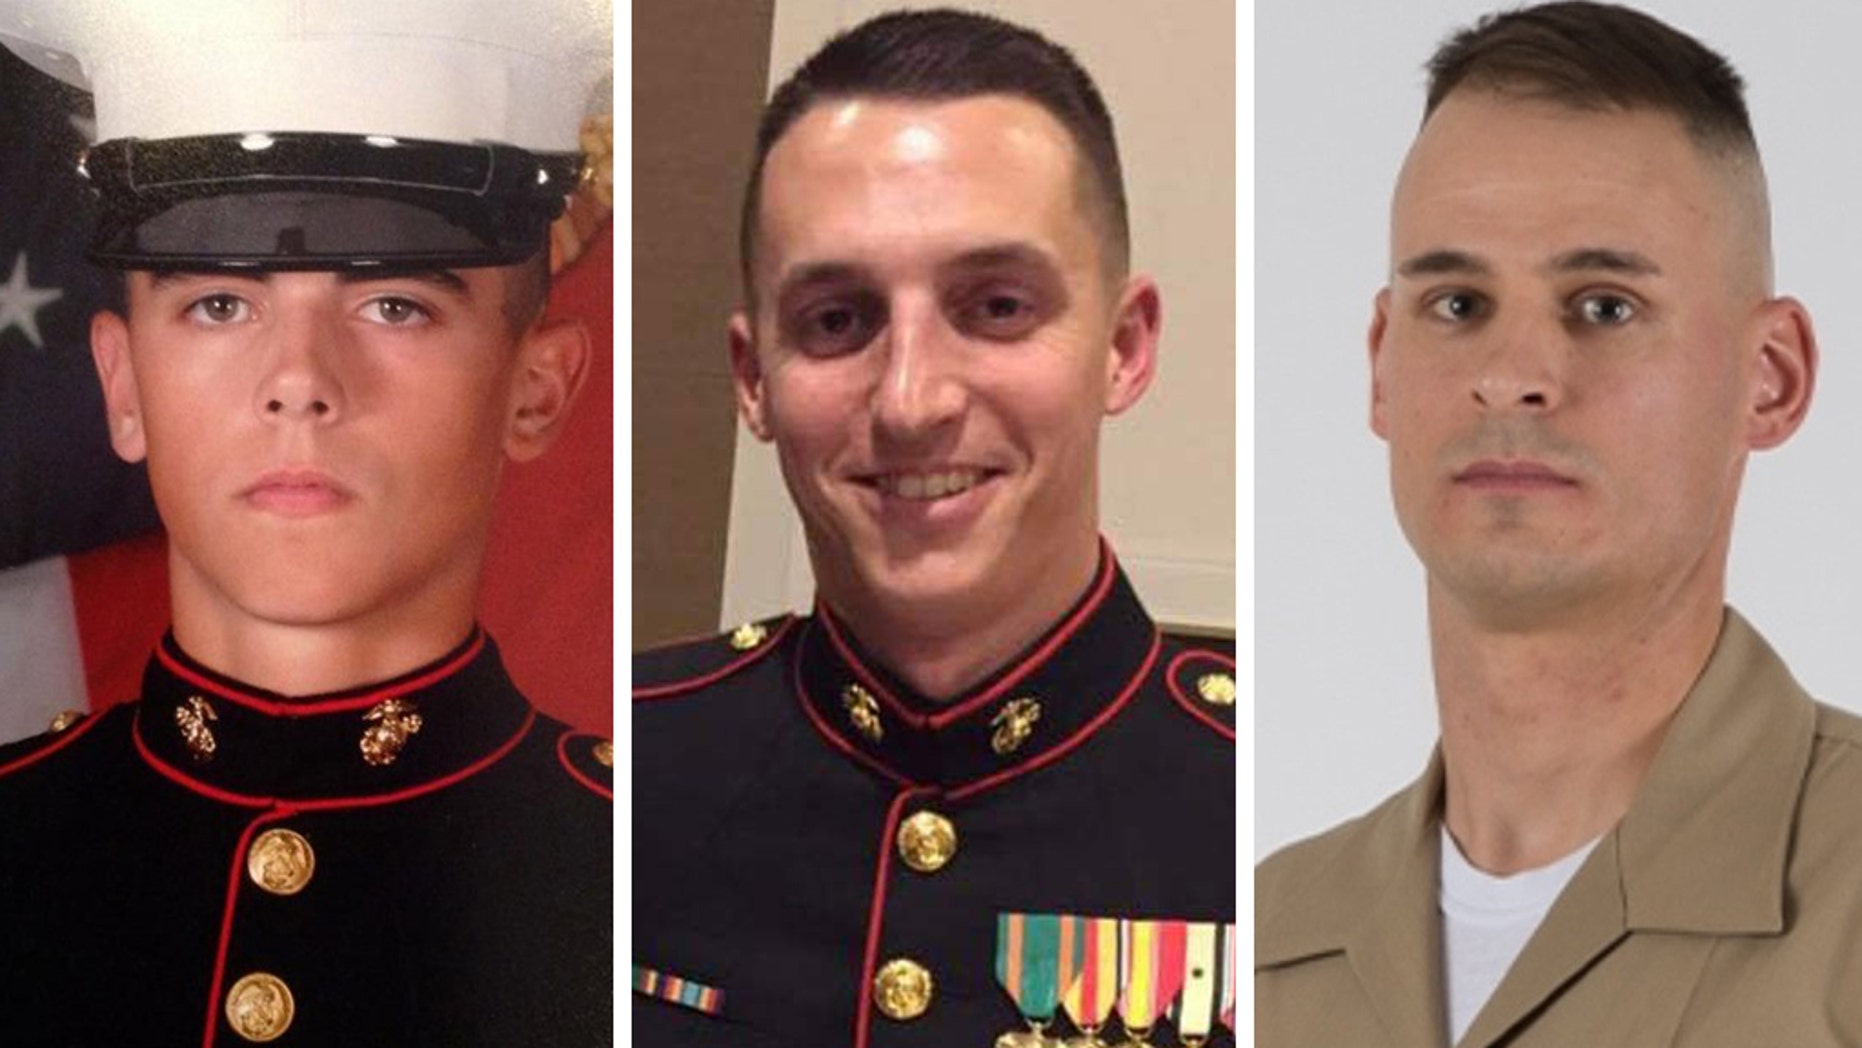 The attack killed (left to right) Cpl. Robert A. Hendriks, Sgt. Benjamin S. Hines and Staff Sgt. Christopher Slutman.